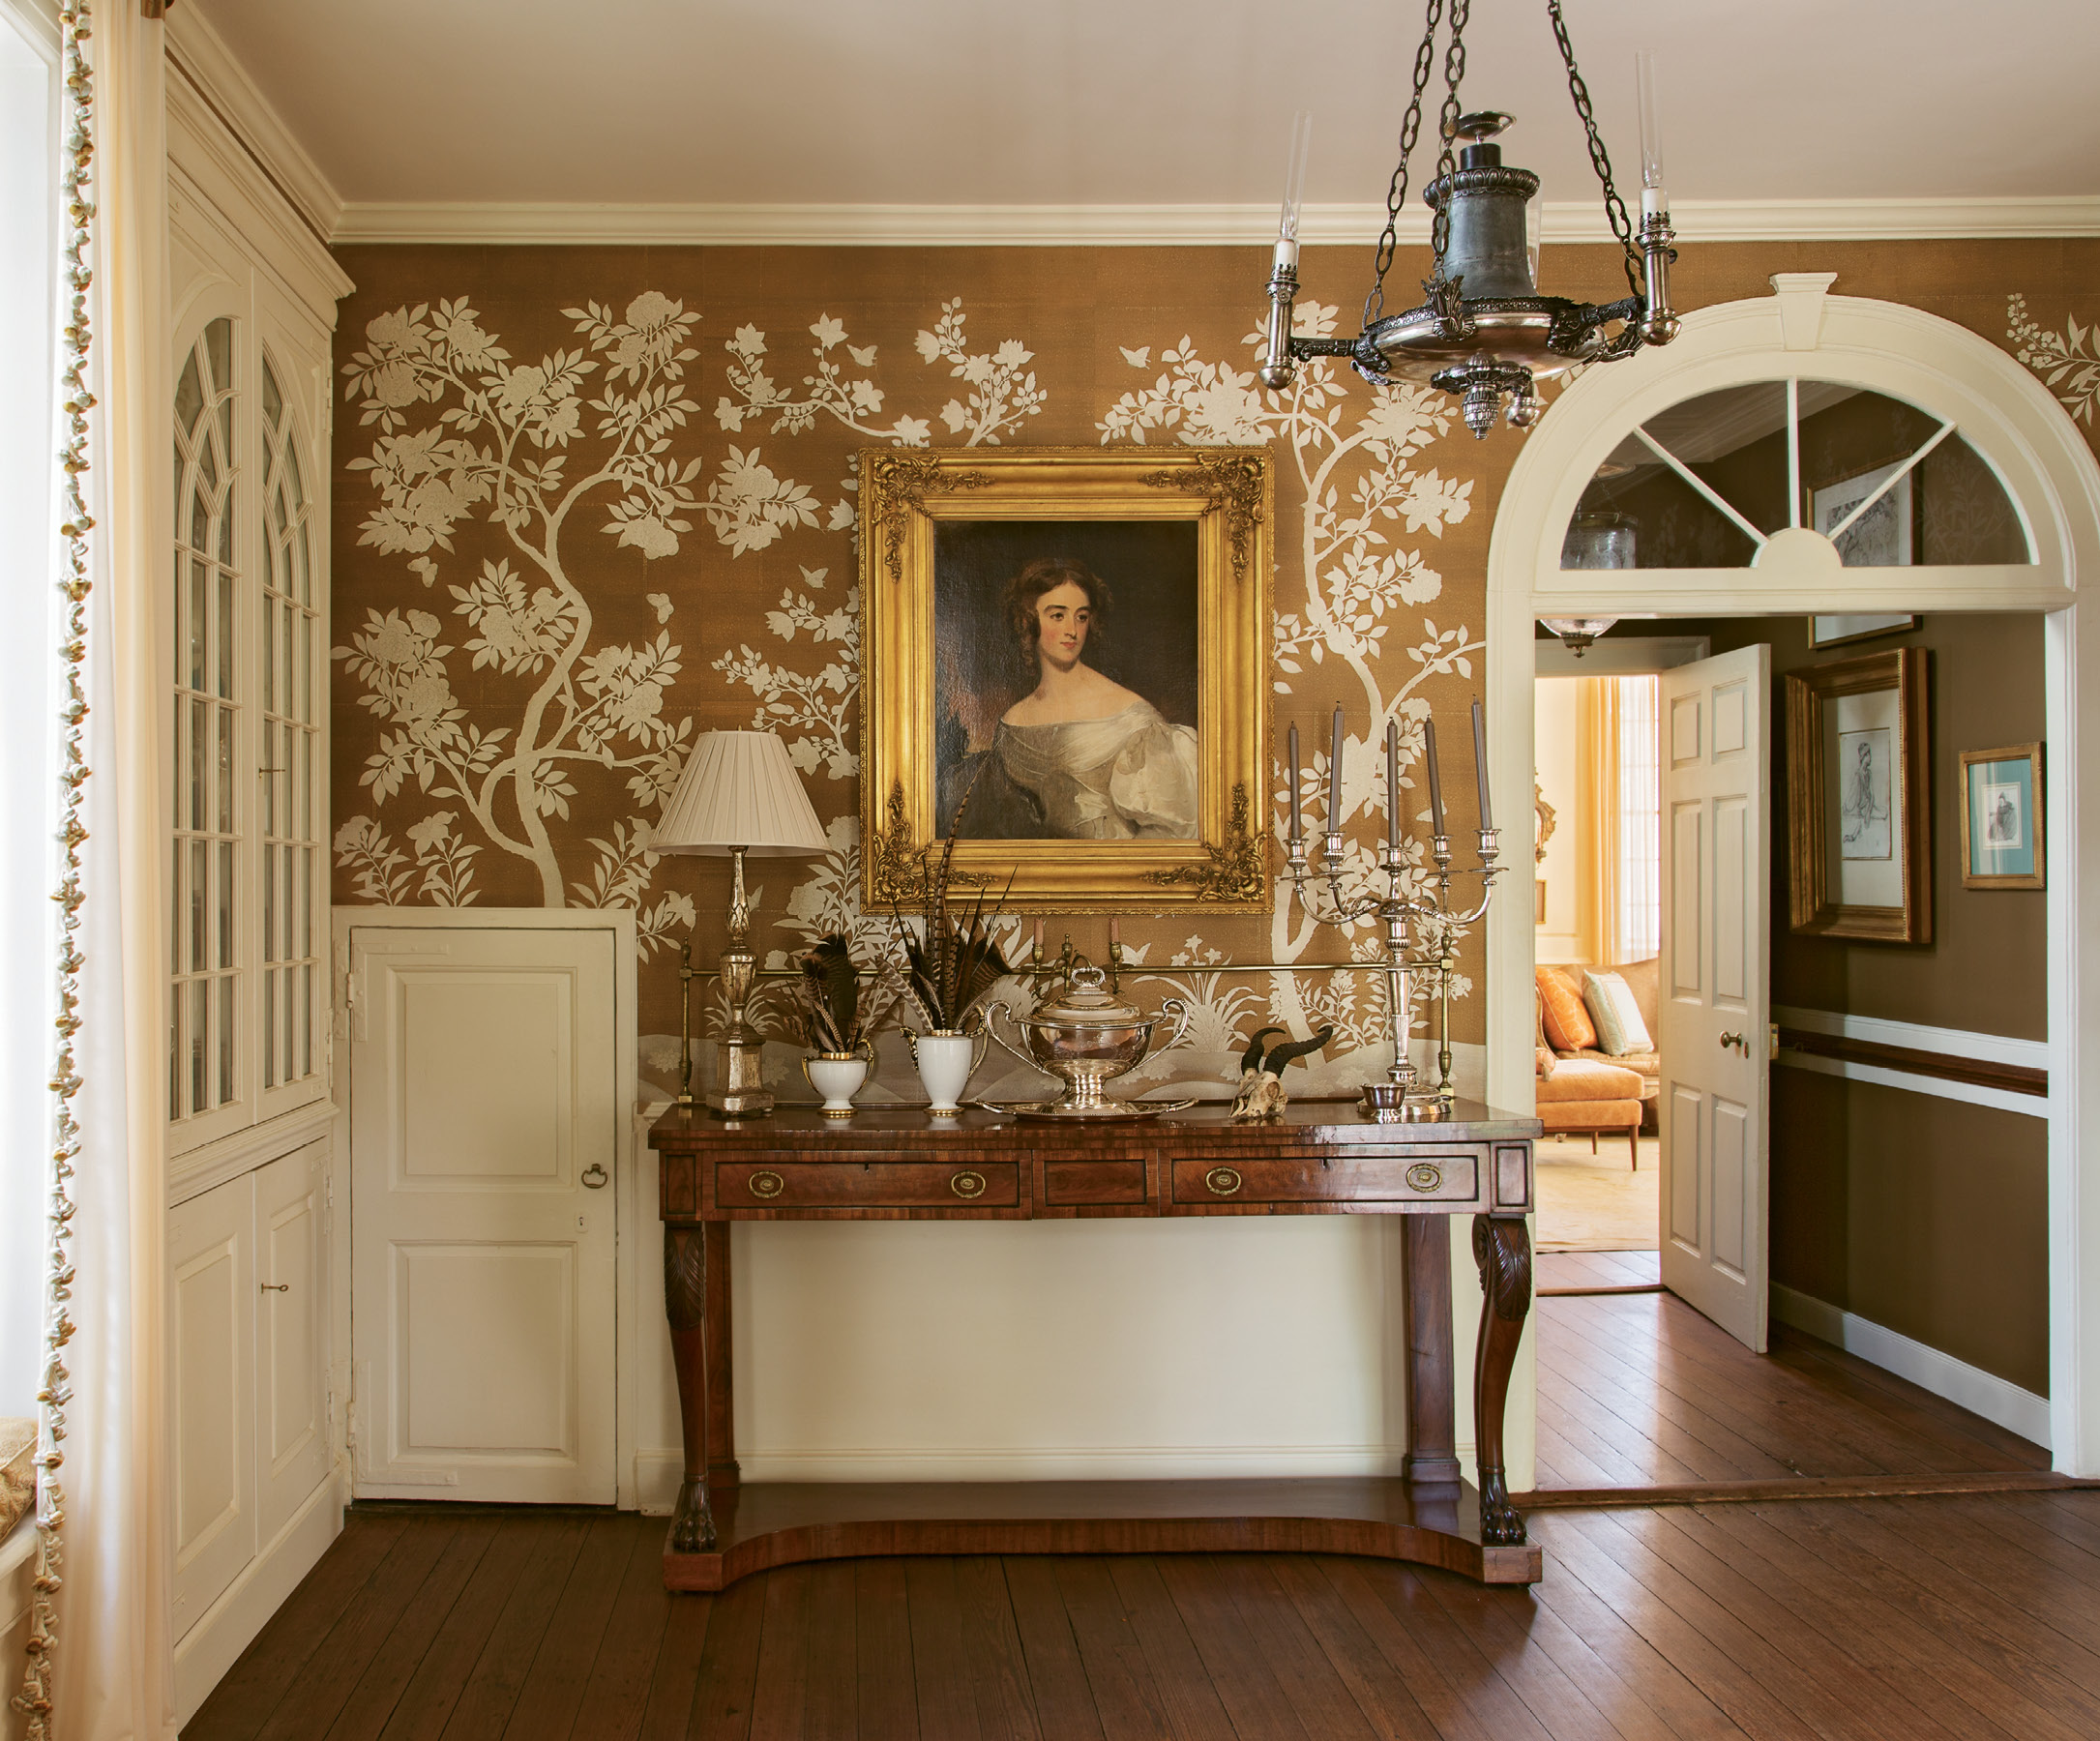 In the butler's pantry, hand-painted Gracie wallpaper complements a portrait of Mary Roane Ritchie Green by 19th-century master portrait artist Thomas Sully, who completed more than 2,000 works of wealthy patrons and politicians.